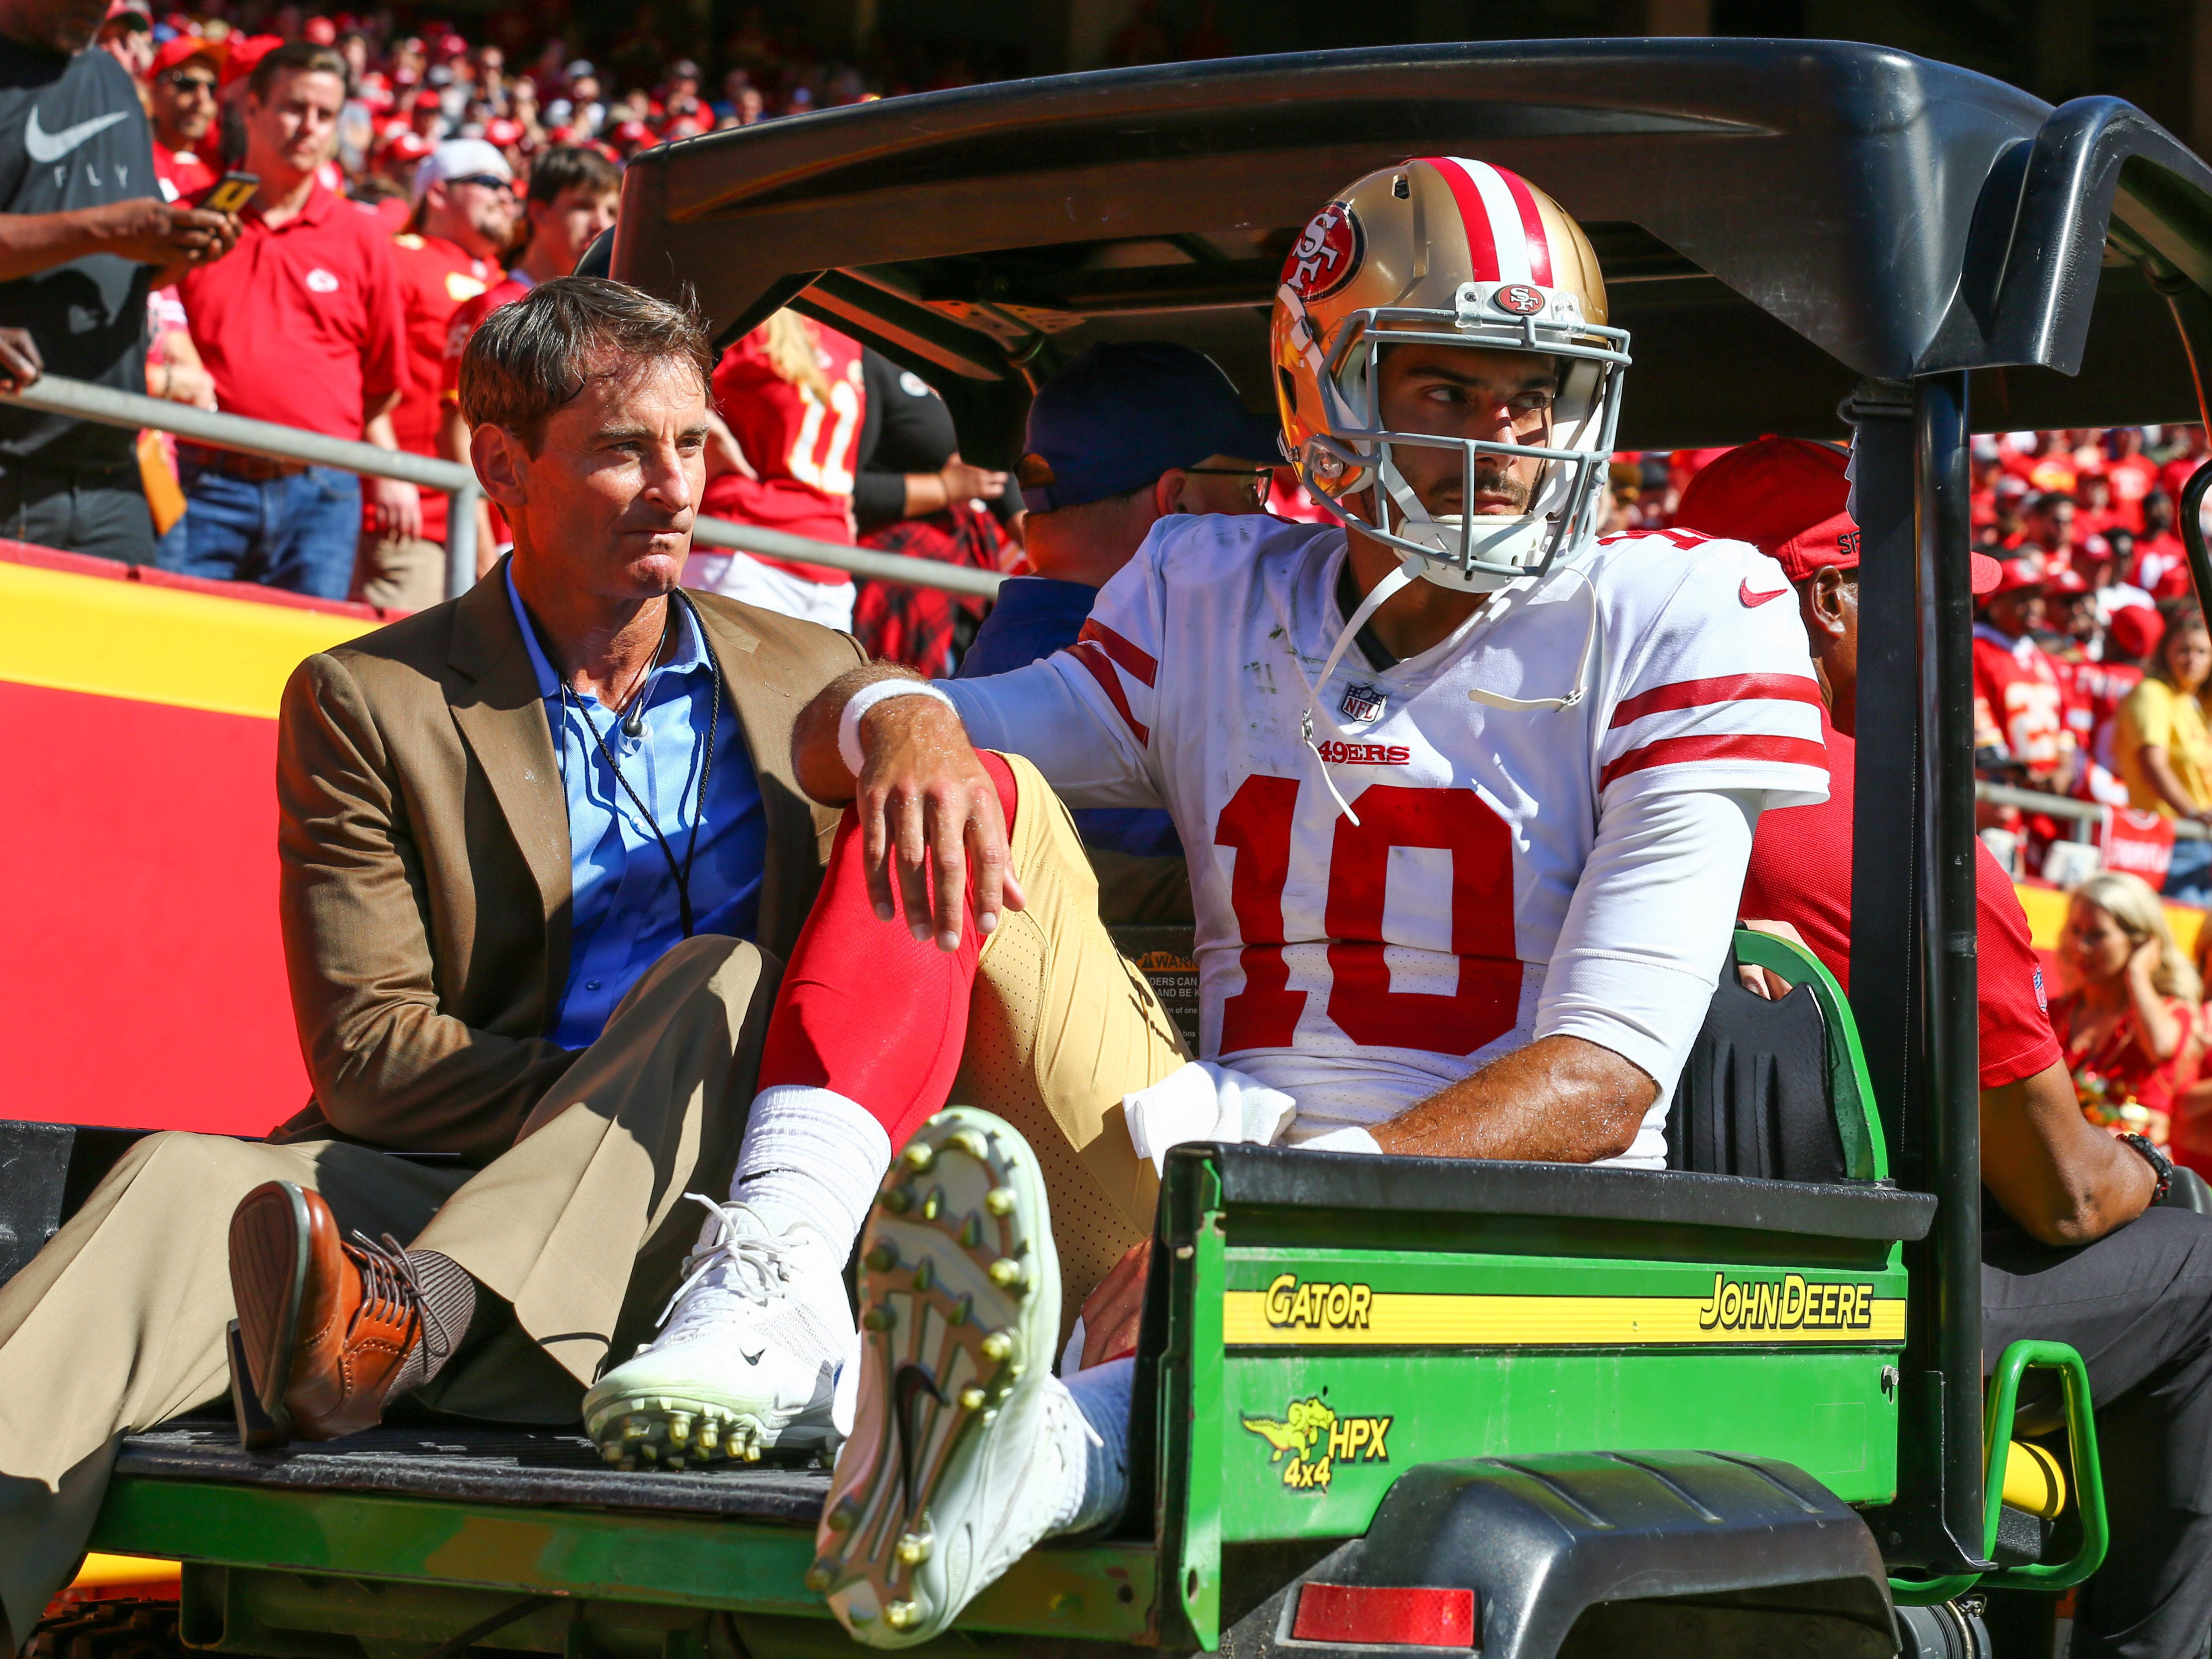 Jimmy Garoppolo, QB, San Francisco 49ers (torn ACL, out for season)